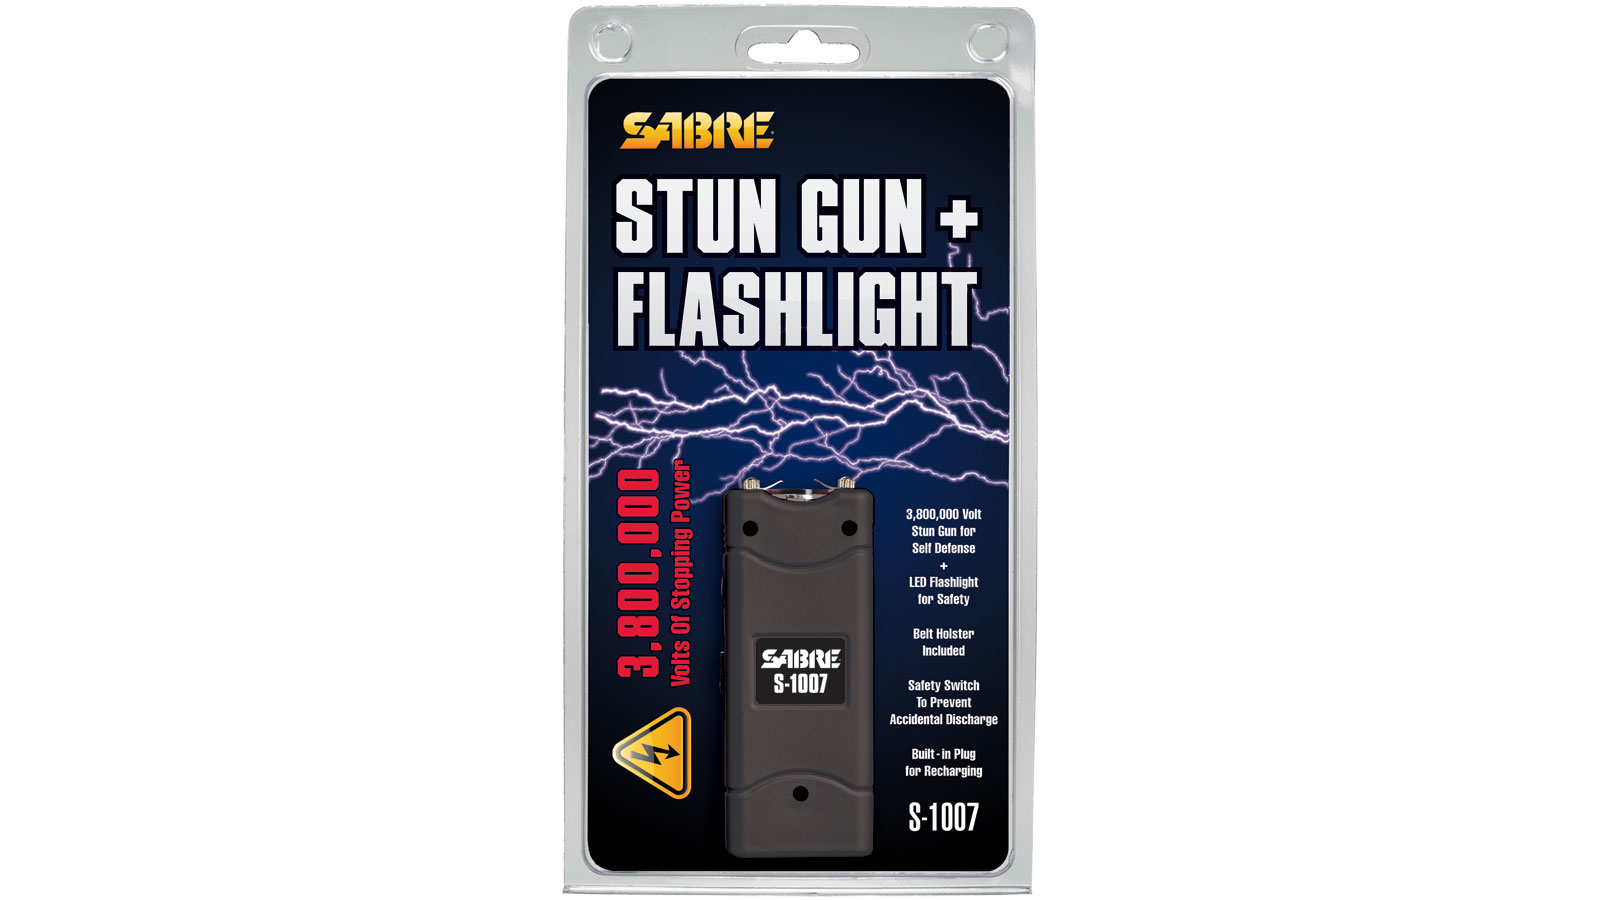 Sabre S1007BK 3.8 Million Volt Stun Gun|Flashlight Portable 2.35 lbs   Black